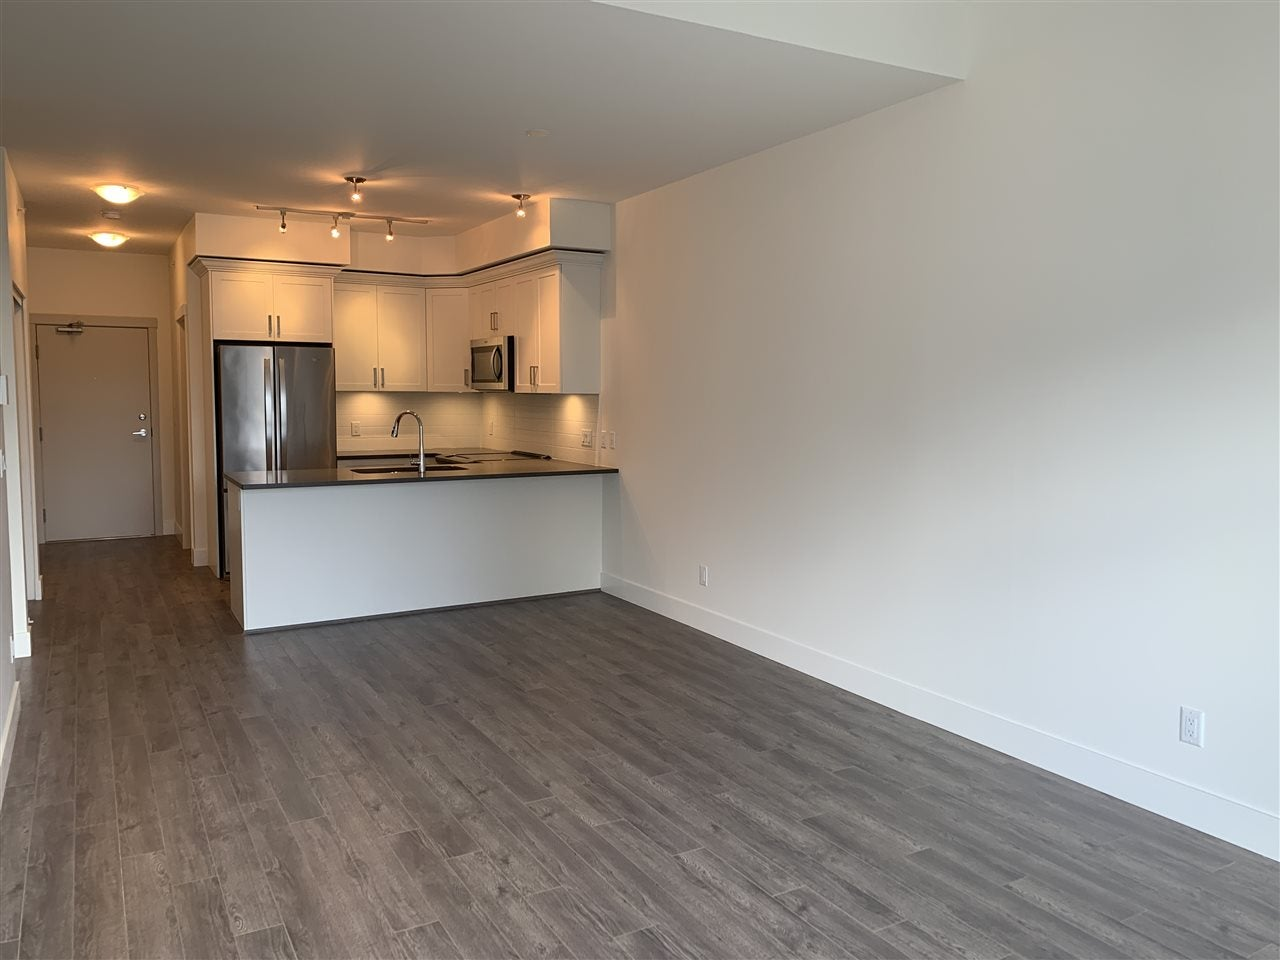 403 2436 KELLY AVENUE - Central Pt Coquitlam Apartment/Condo for sale, 1 Bedroom (R2481447) - #9